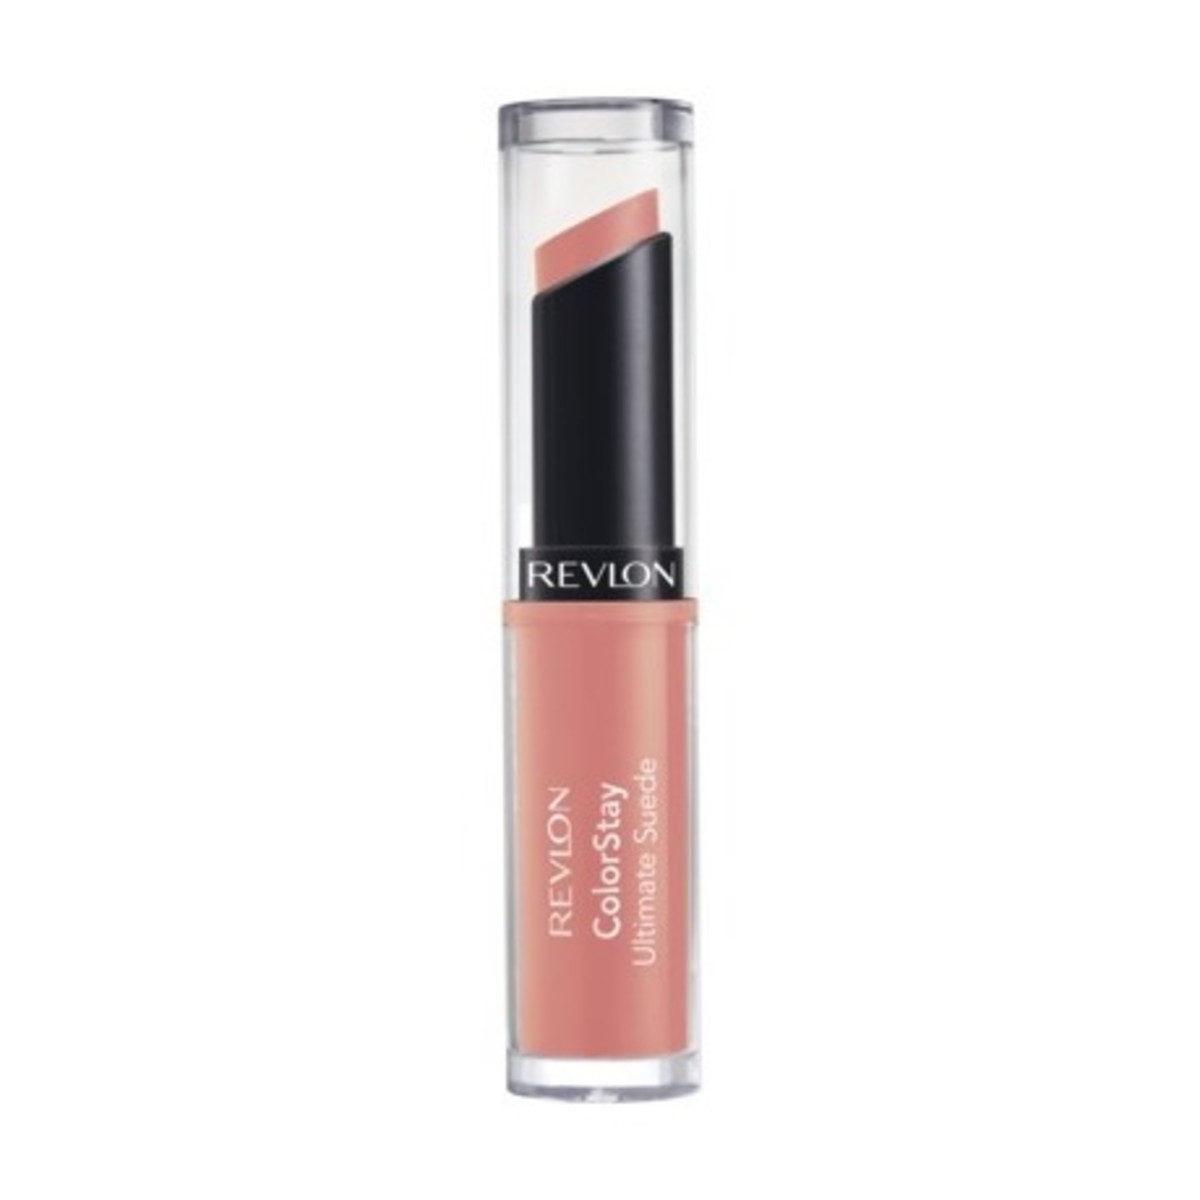 Revlon ColorStay Ultimate Suede Lipstick in Flashing Lights